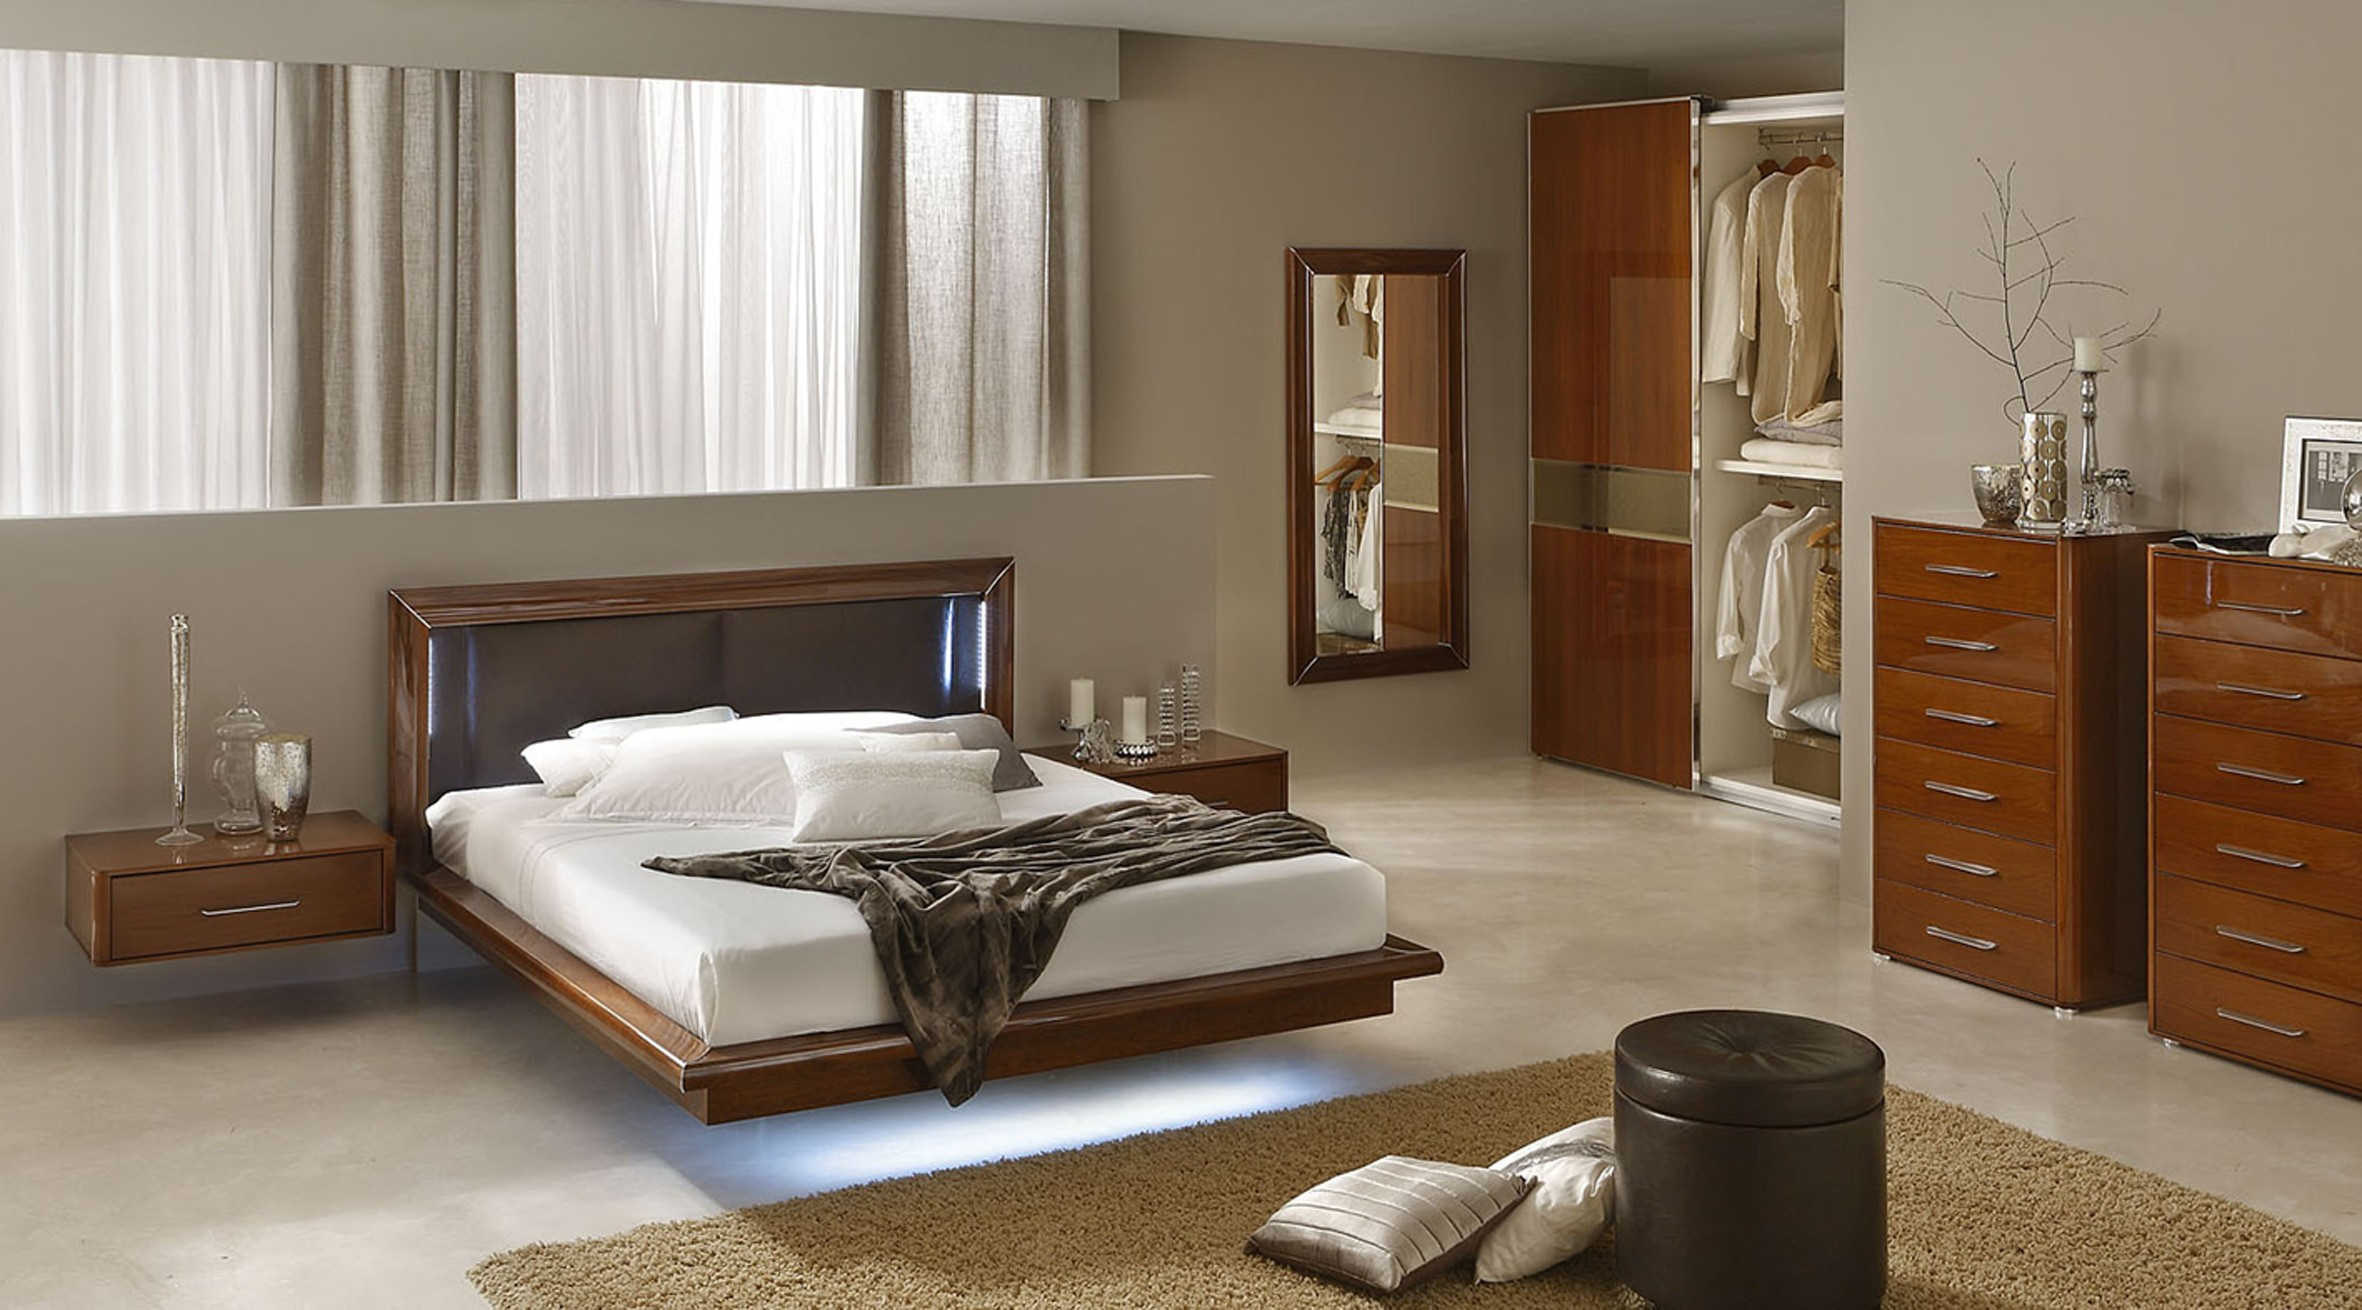 Sky modern italian bedroom set n contemporary - Contemporary modern bedroom sets ...